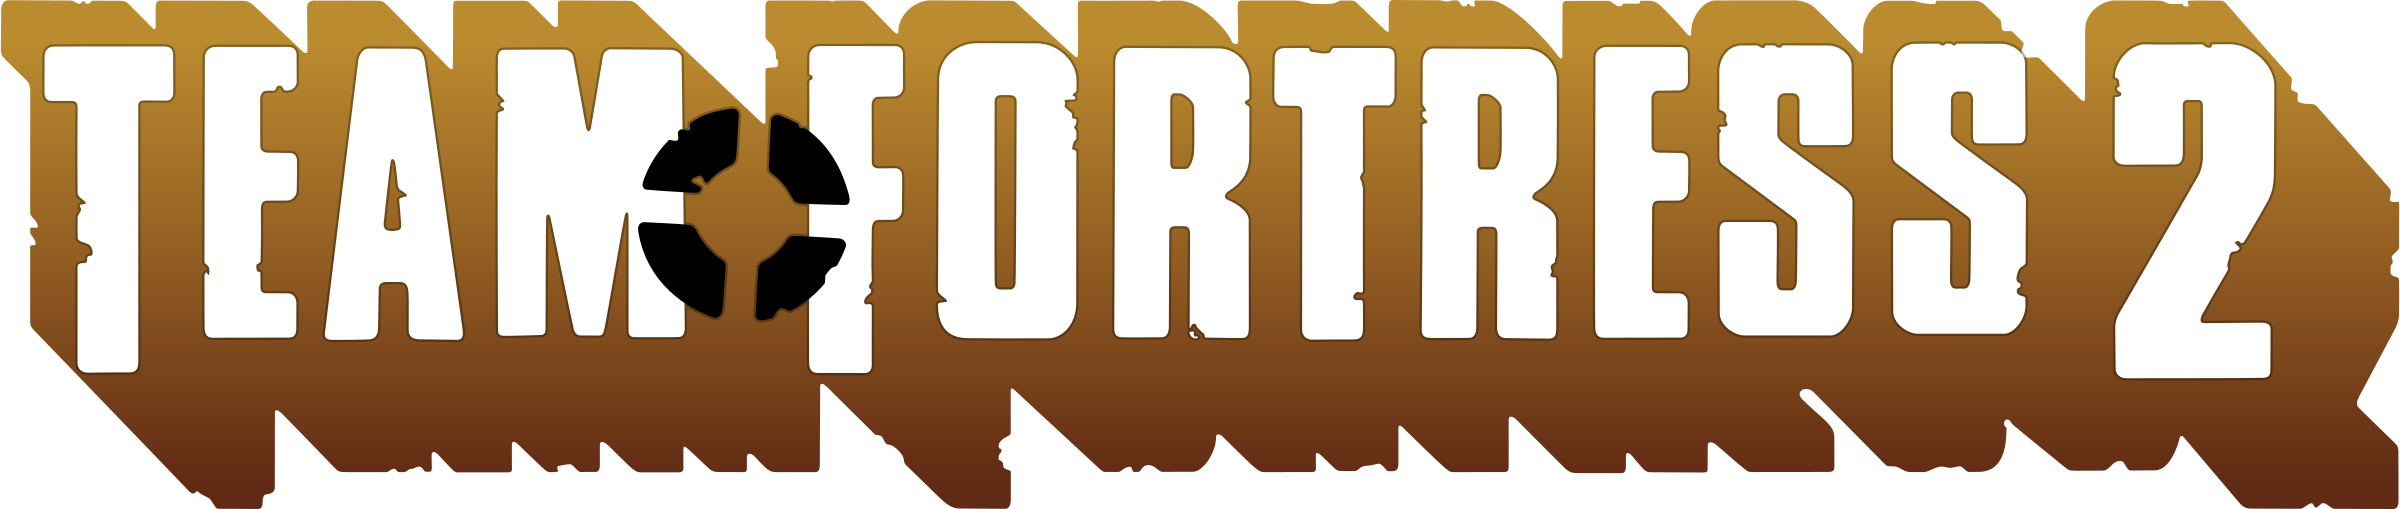 Tf2 logo png. Team fortress transparent svg